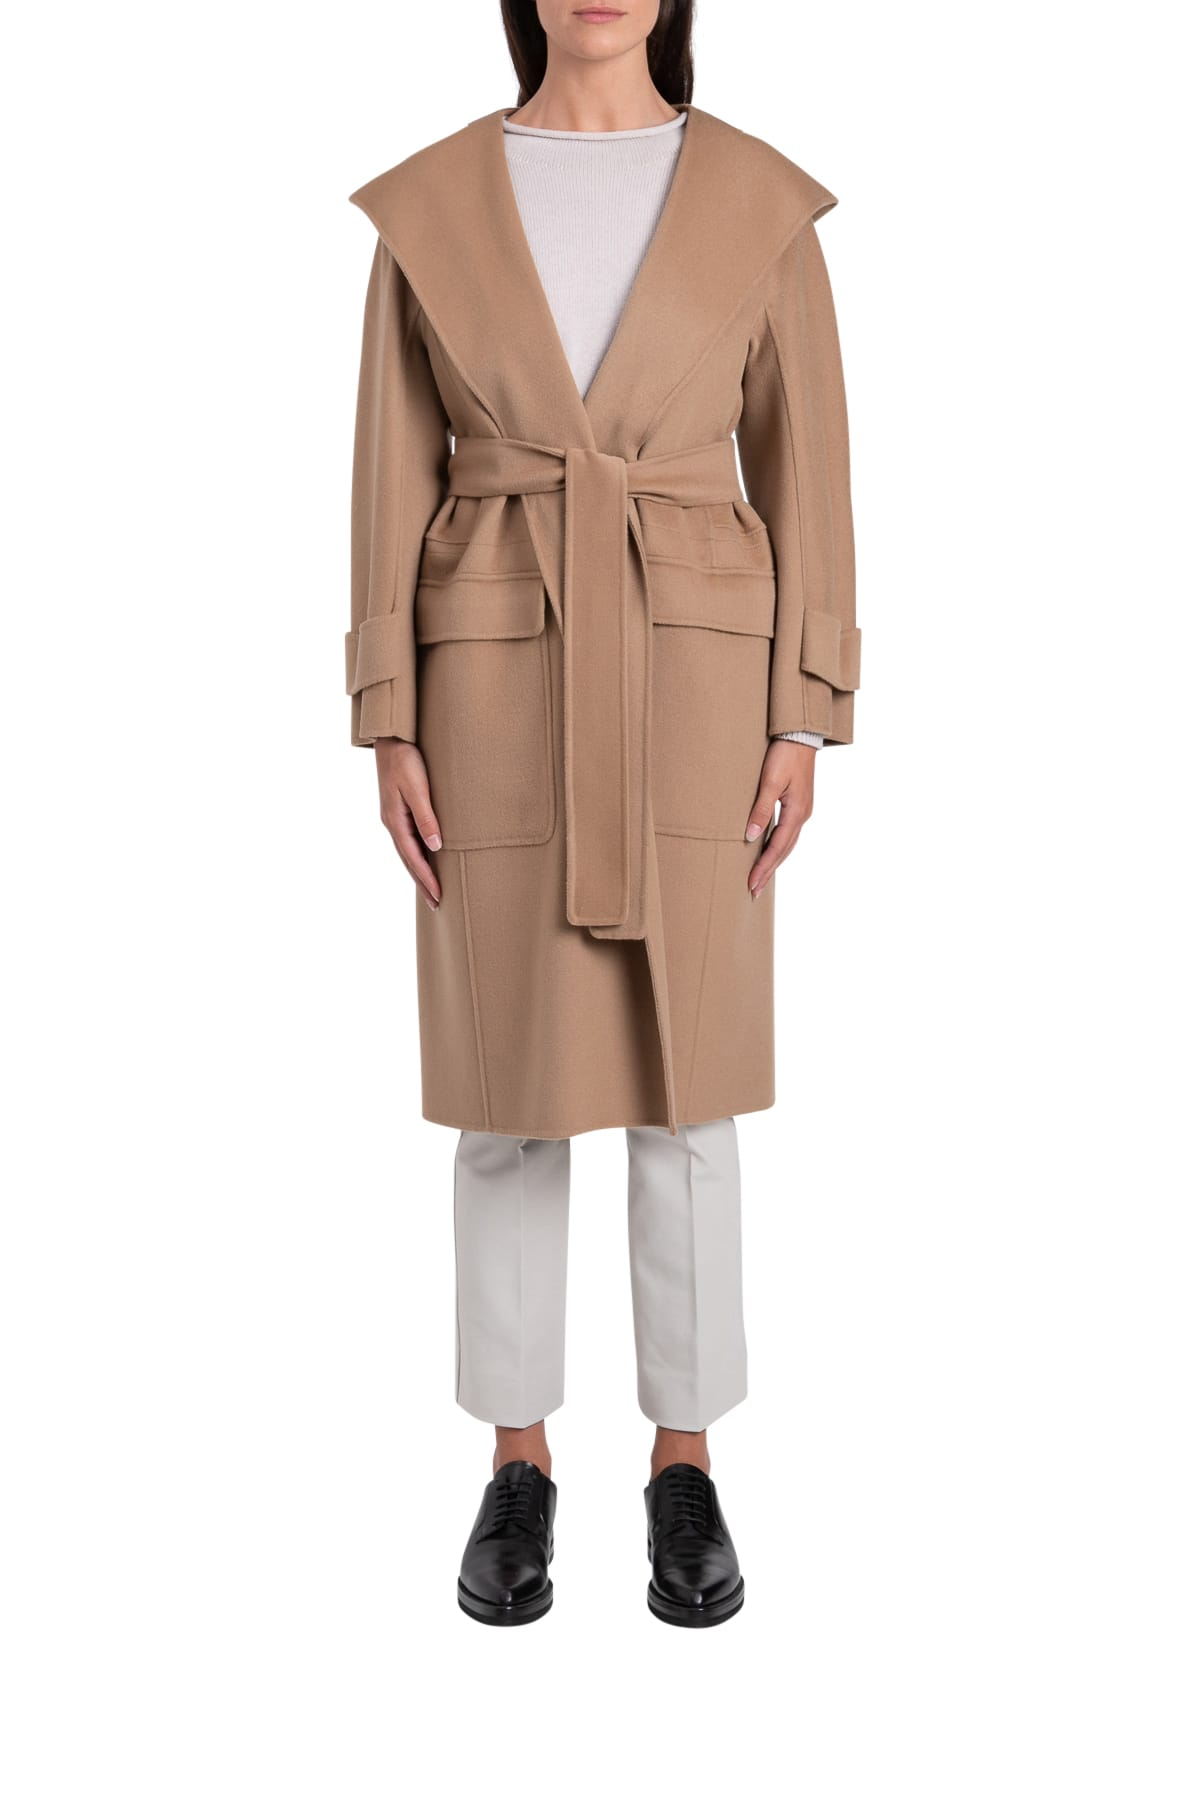 S Max Mara Here is The Cube Teresa Cappotto Con Cappuccio In Lana Vergine 100%